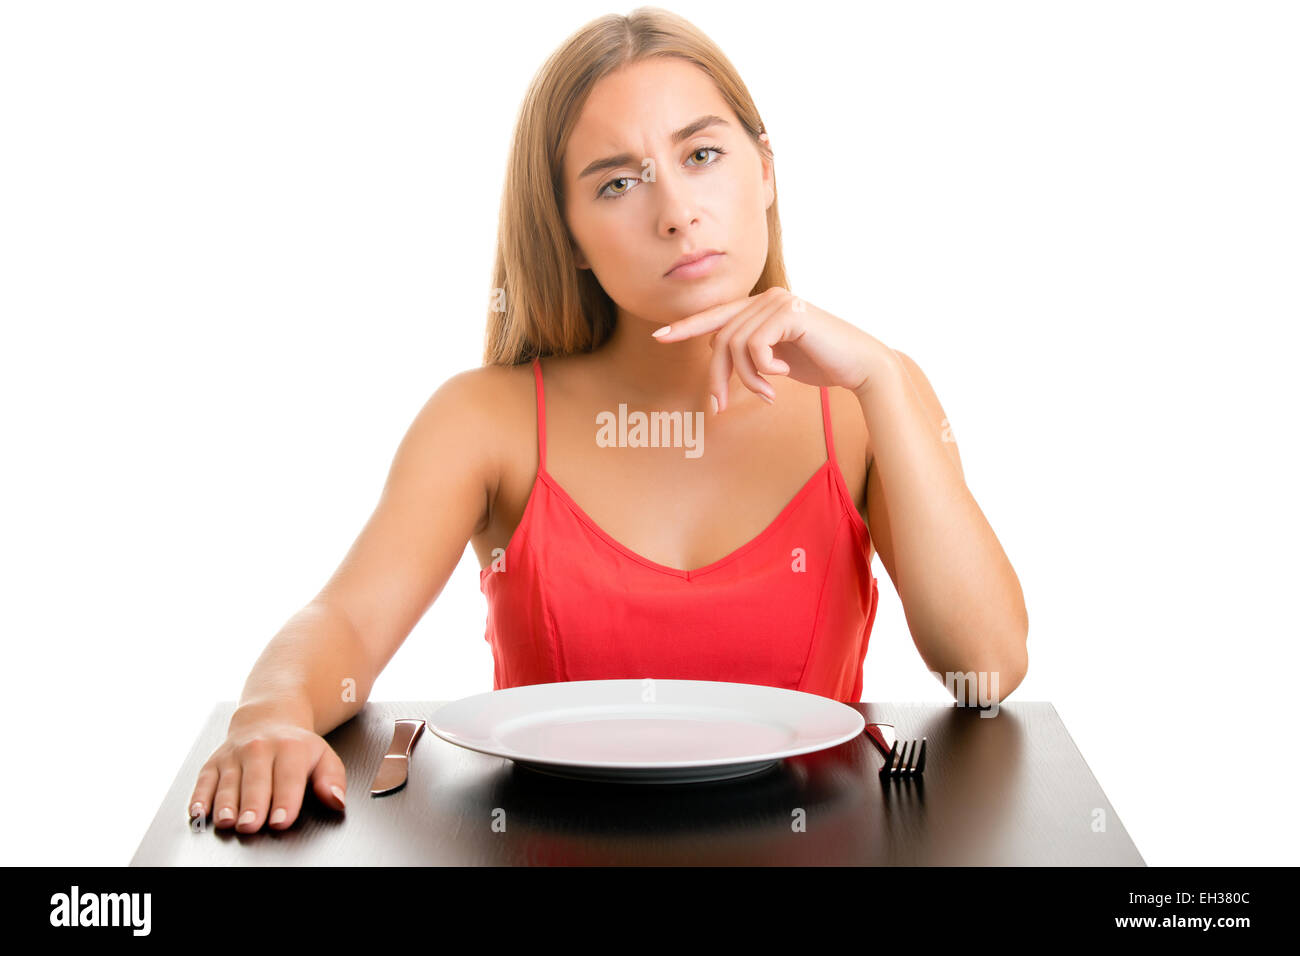 Hungry woman on a diet waiting with an empty place, isolated in white - Stock Image